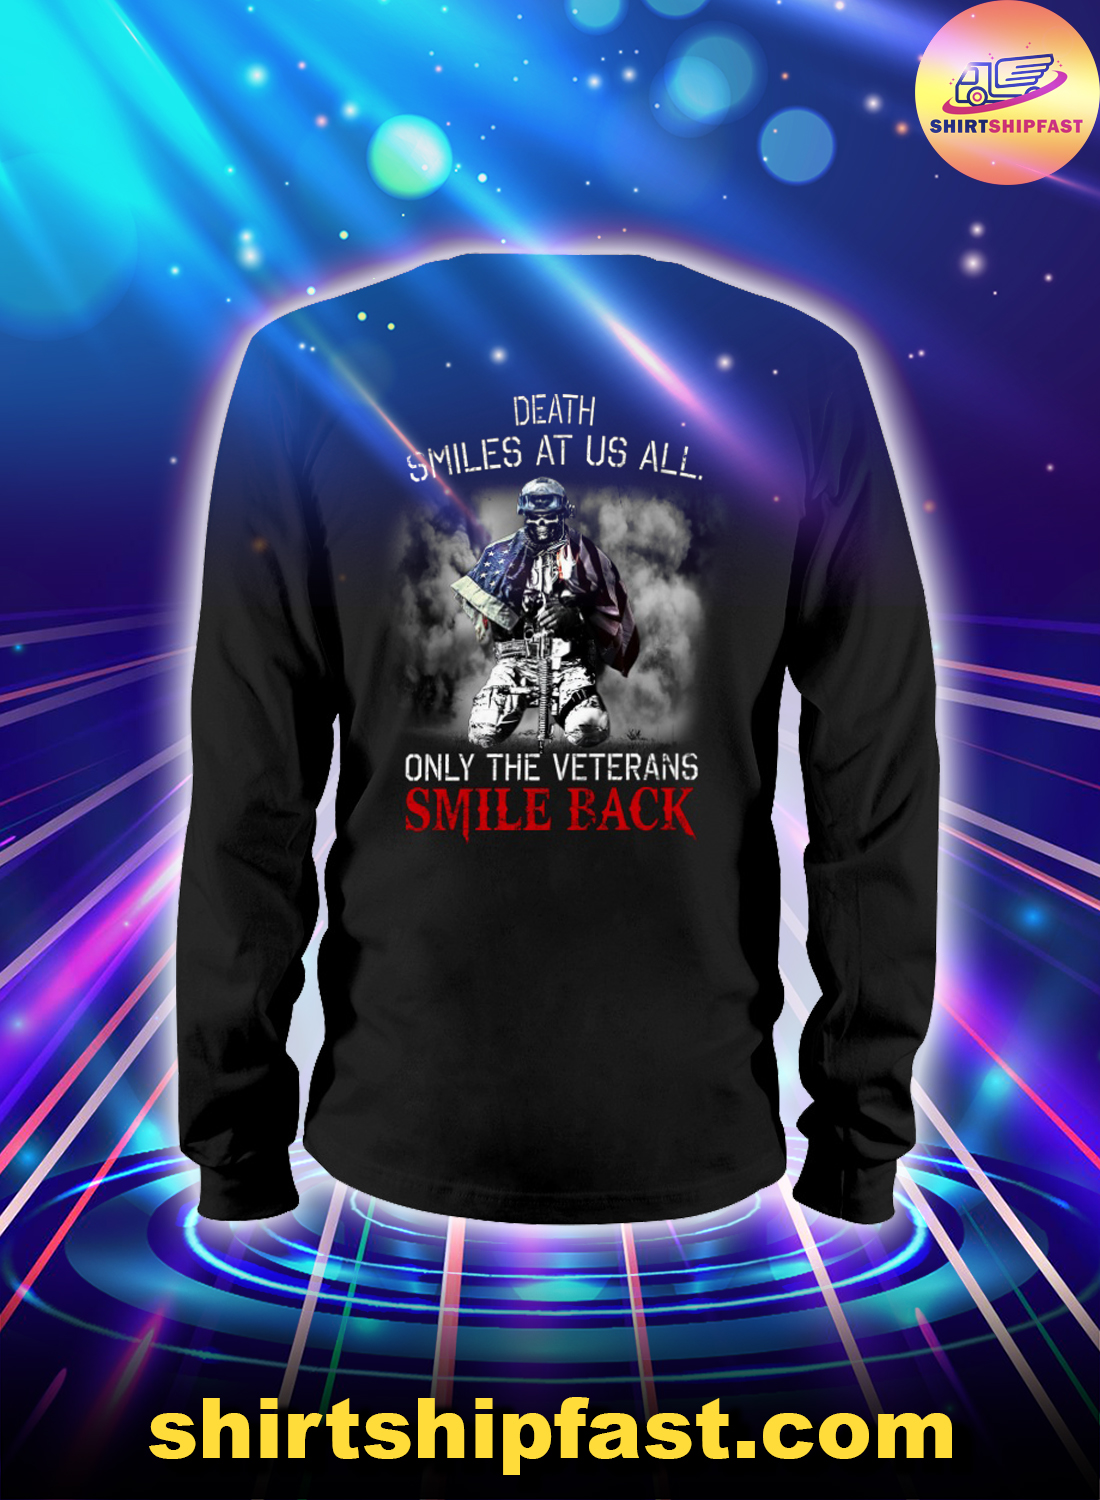 Death smiles at us all only the veterans smile back long sleeve tee